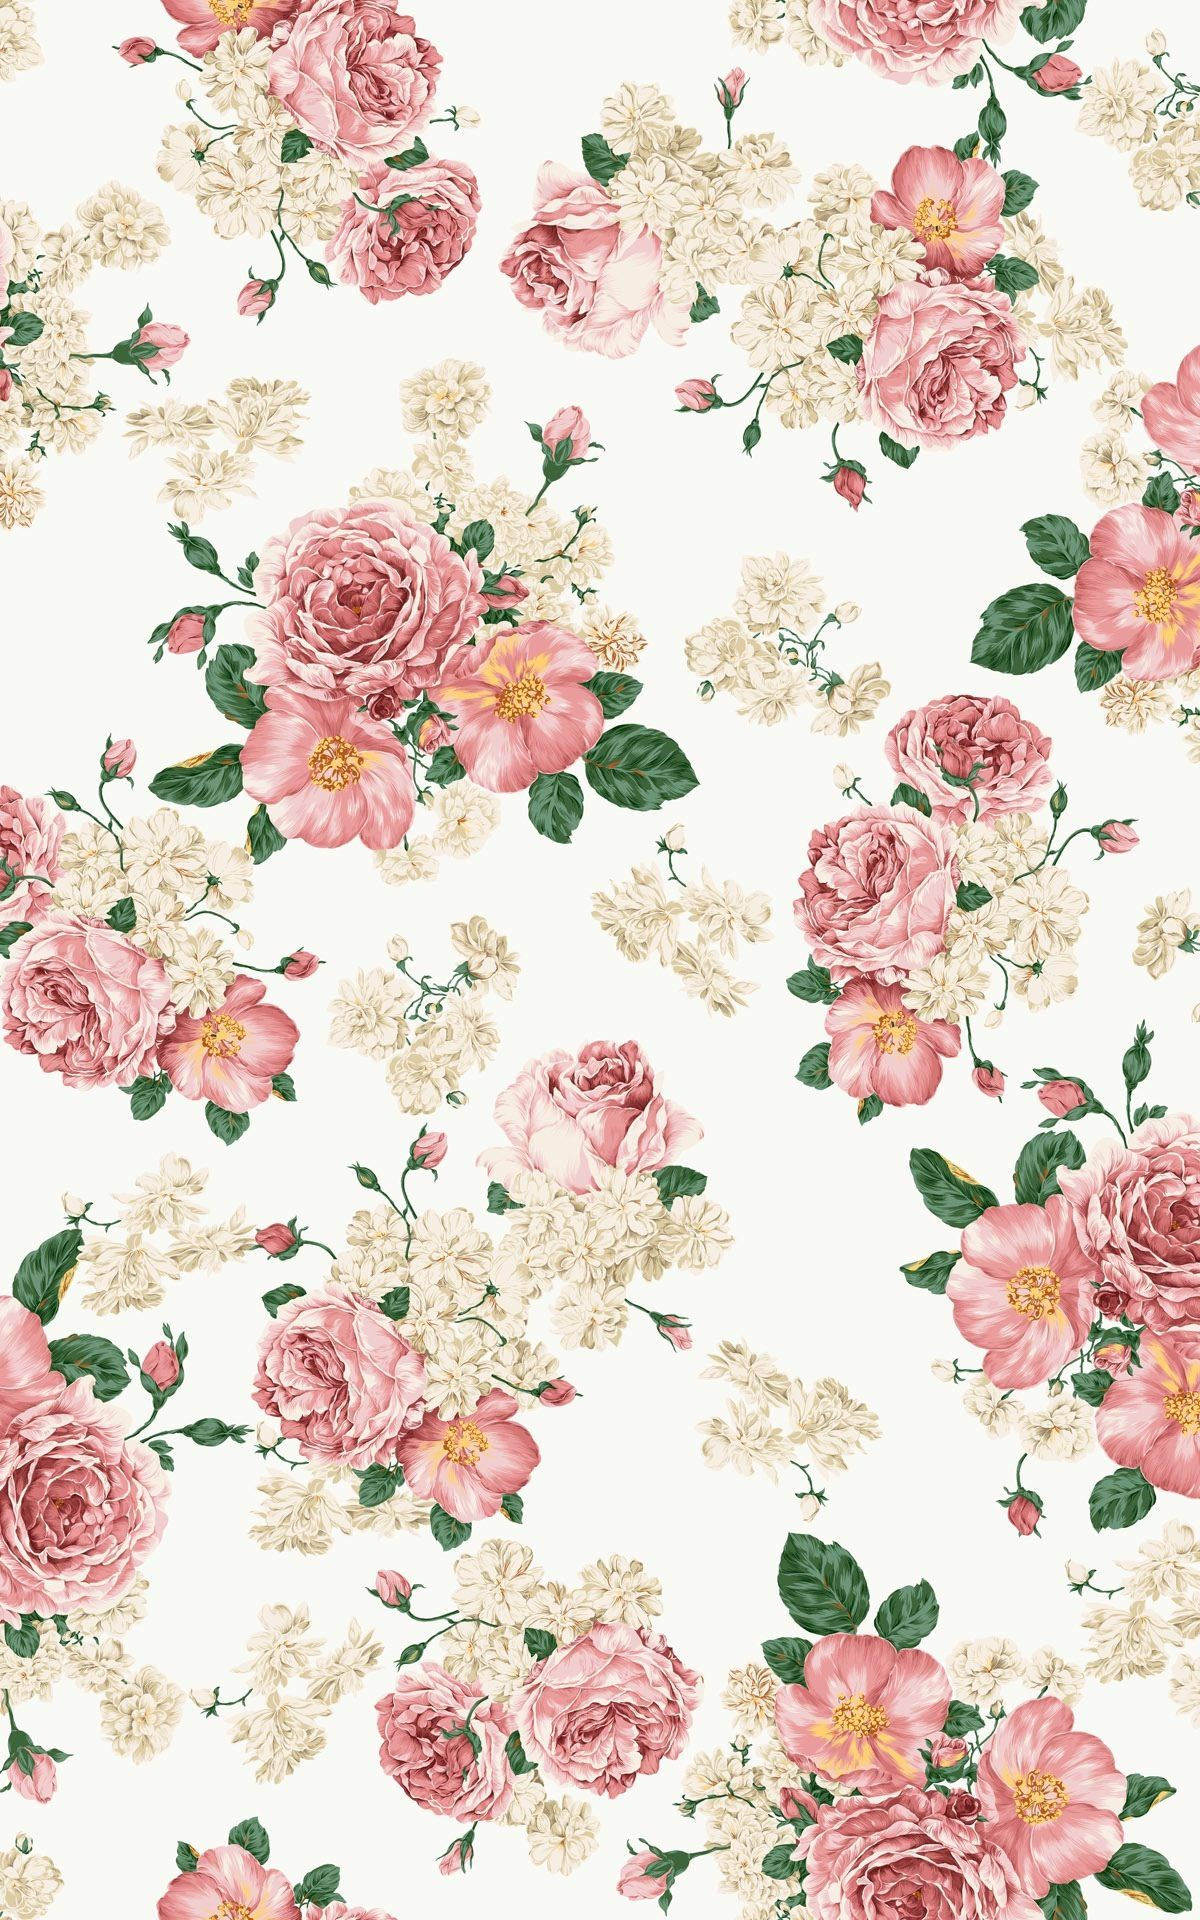 Pink Flower Wallpaper Wide Click Wallpapers Floral Wallpaper Iphone Vintage Flowers Wallpaper Pink Flowers Wallpaper